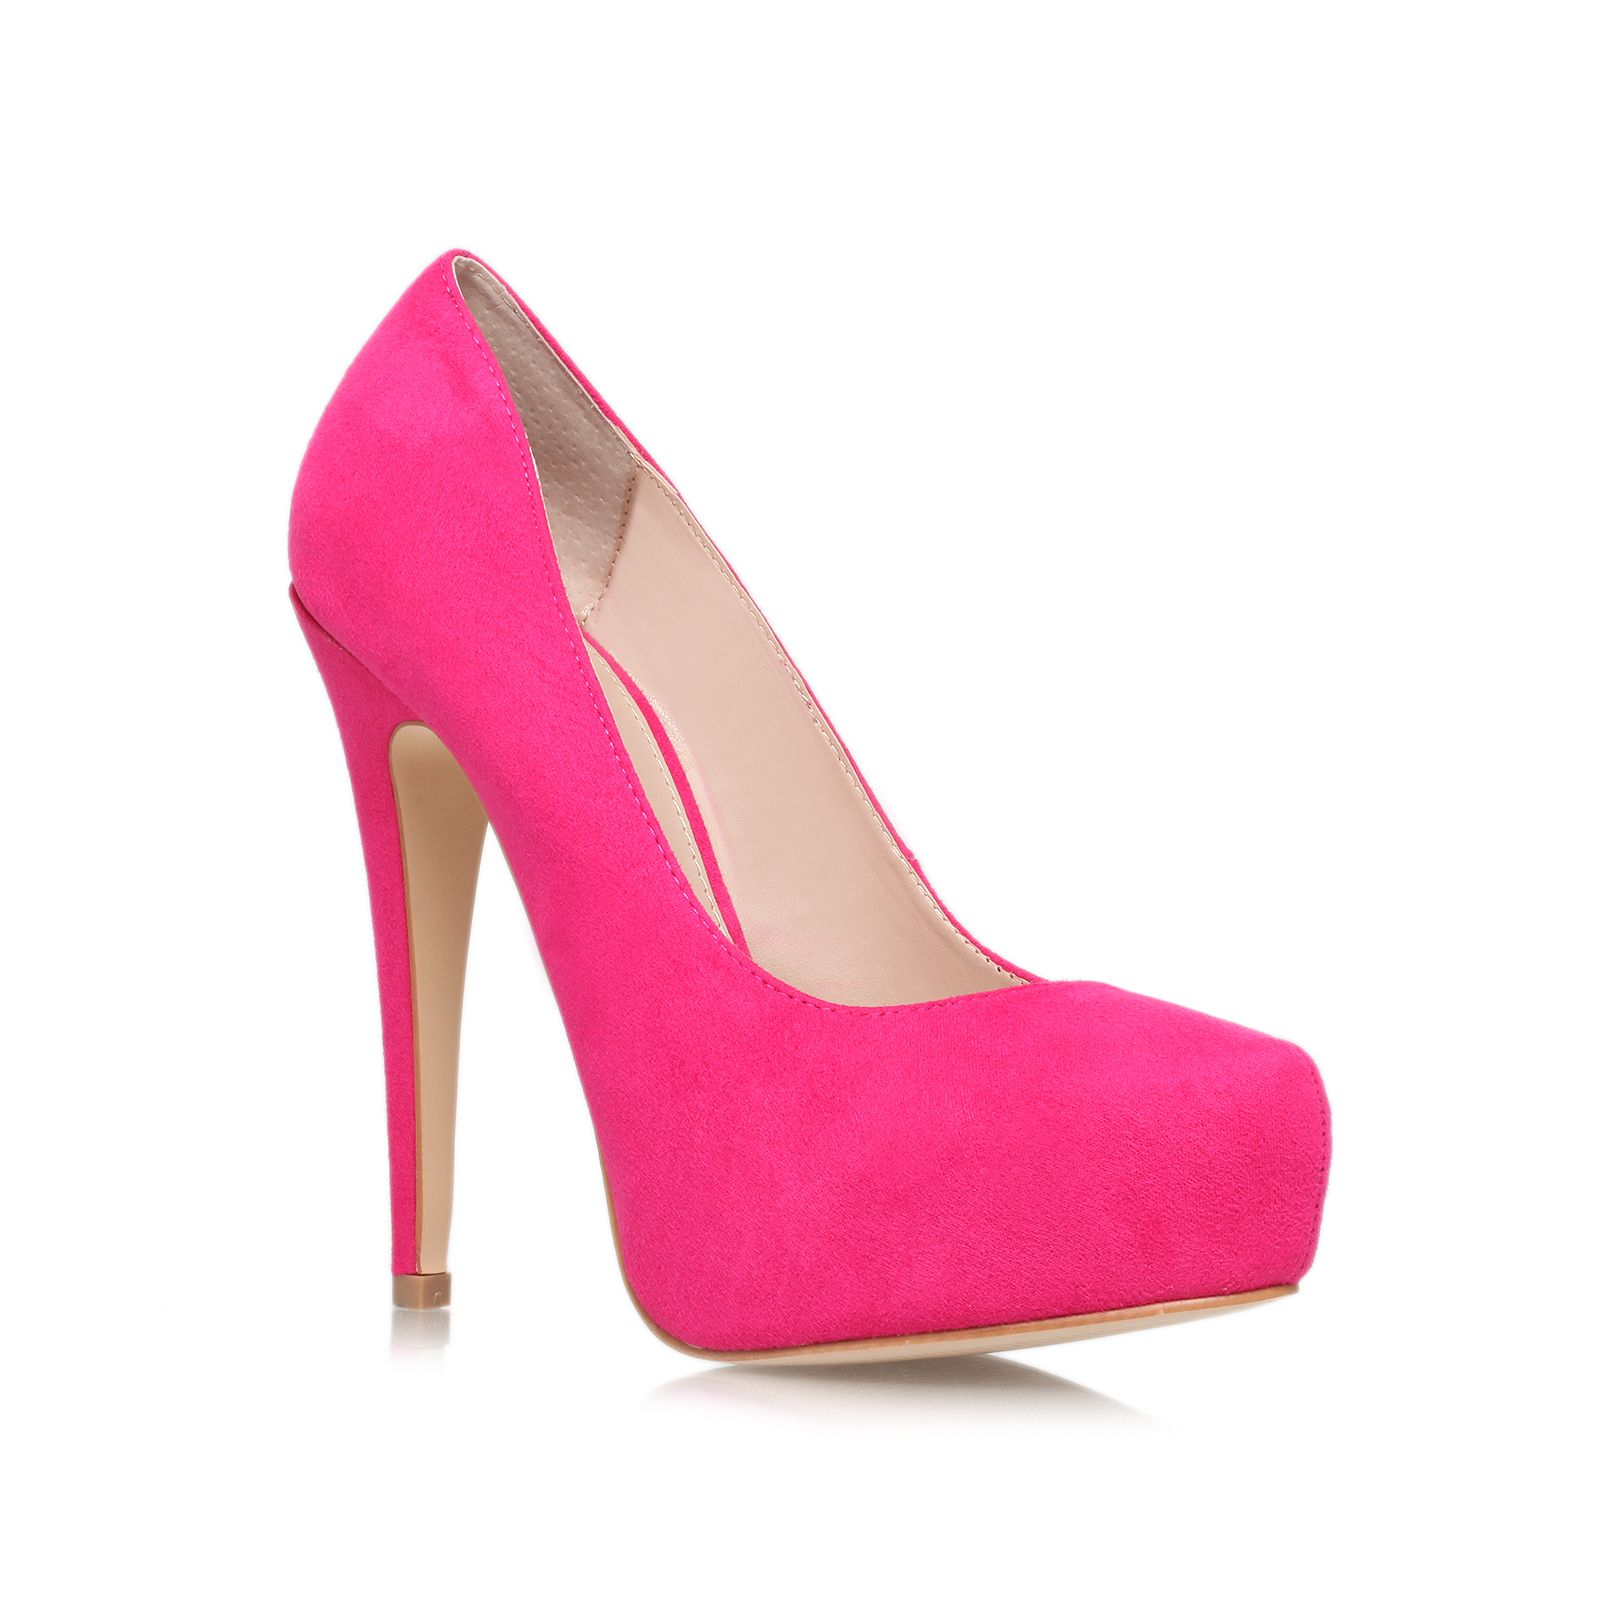 carvela kurt geiger kaci high heel court shoes in pink lyst